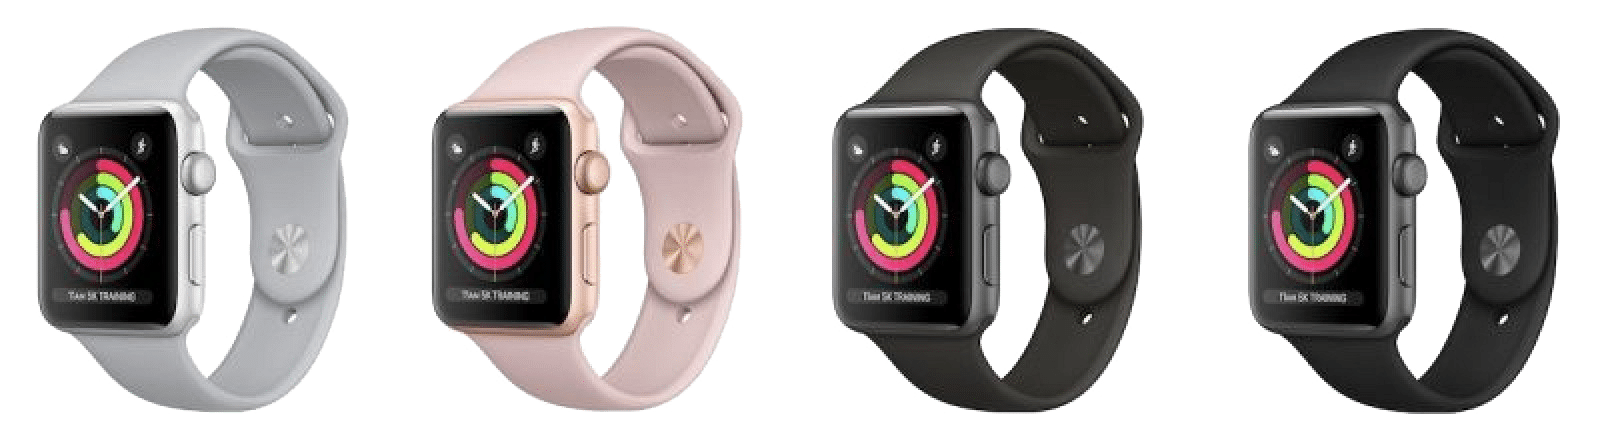 Alle modellen apple watch series 3